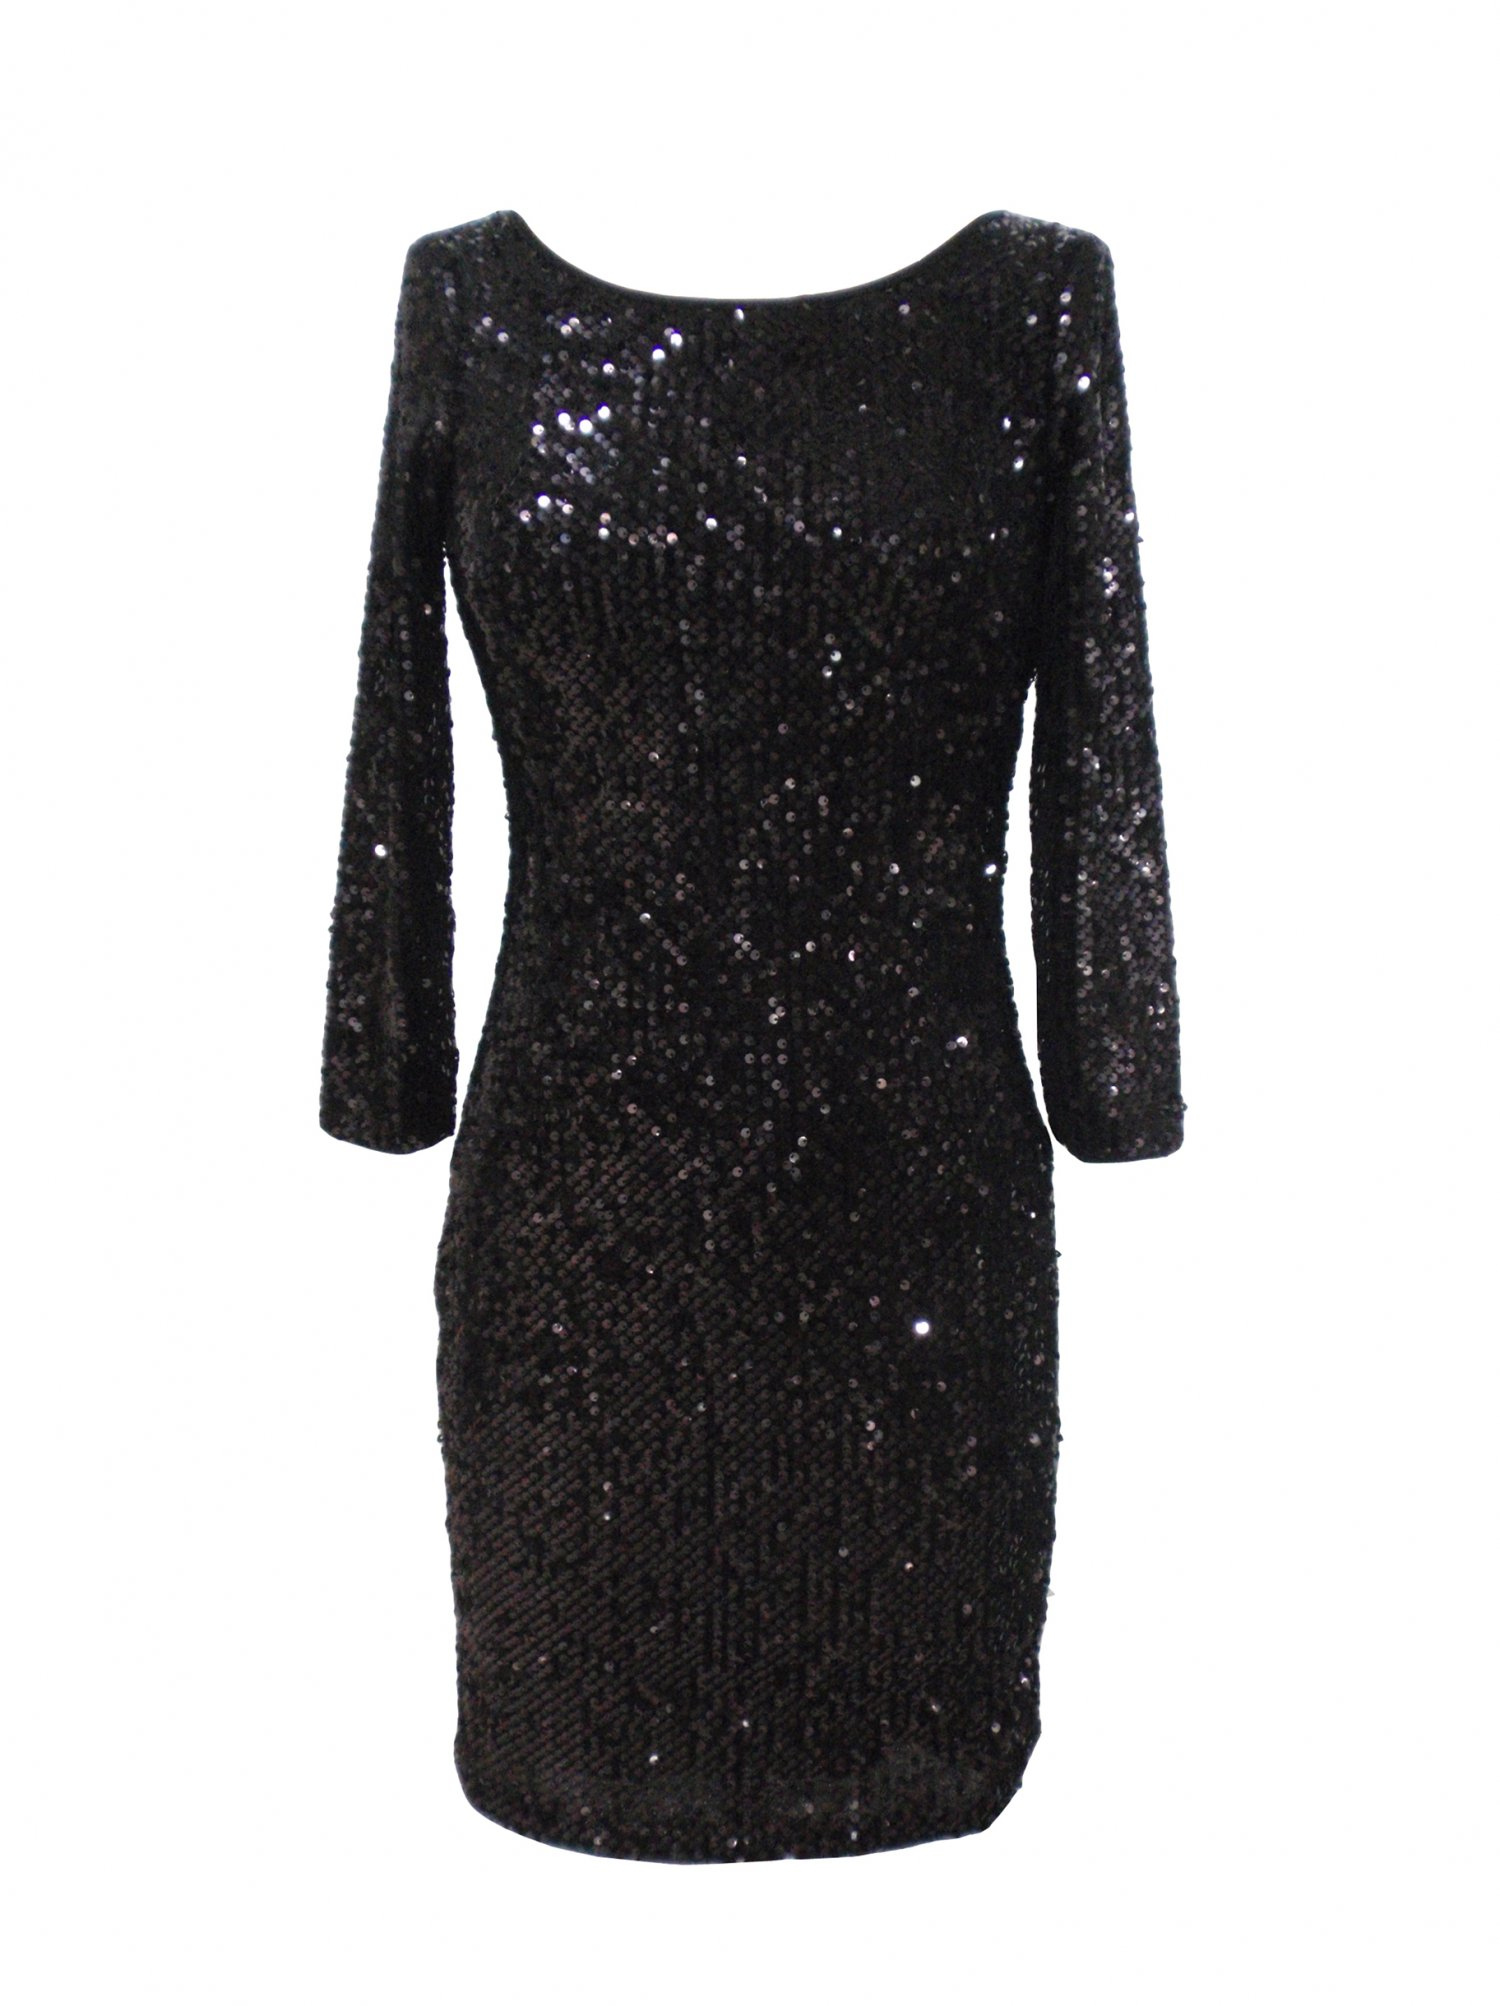 Black Sequin Dress Picture Collection Dressedupgirl Com